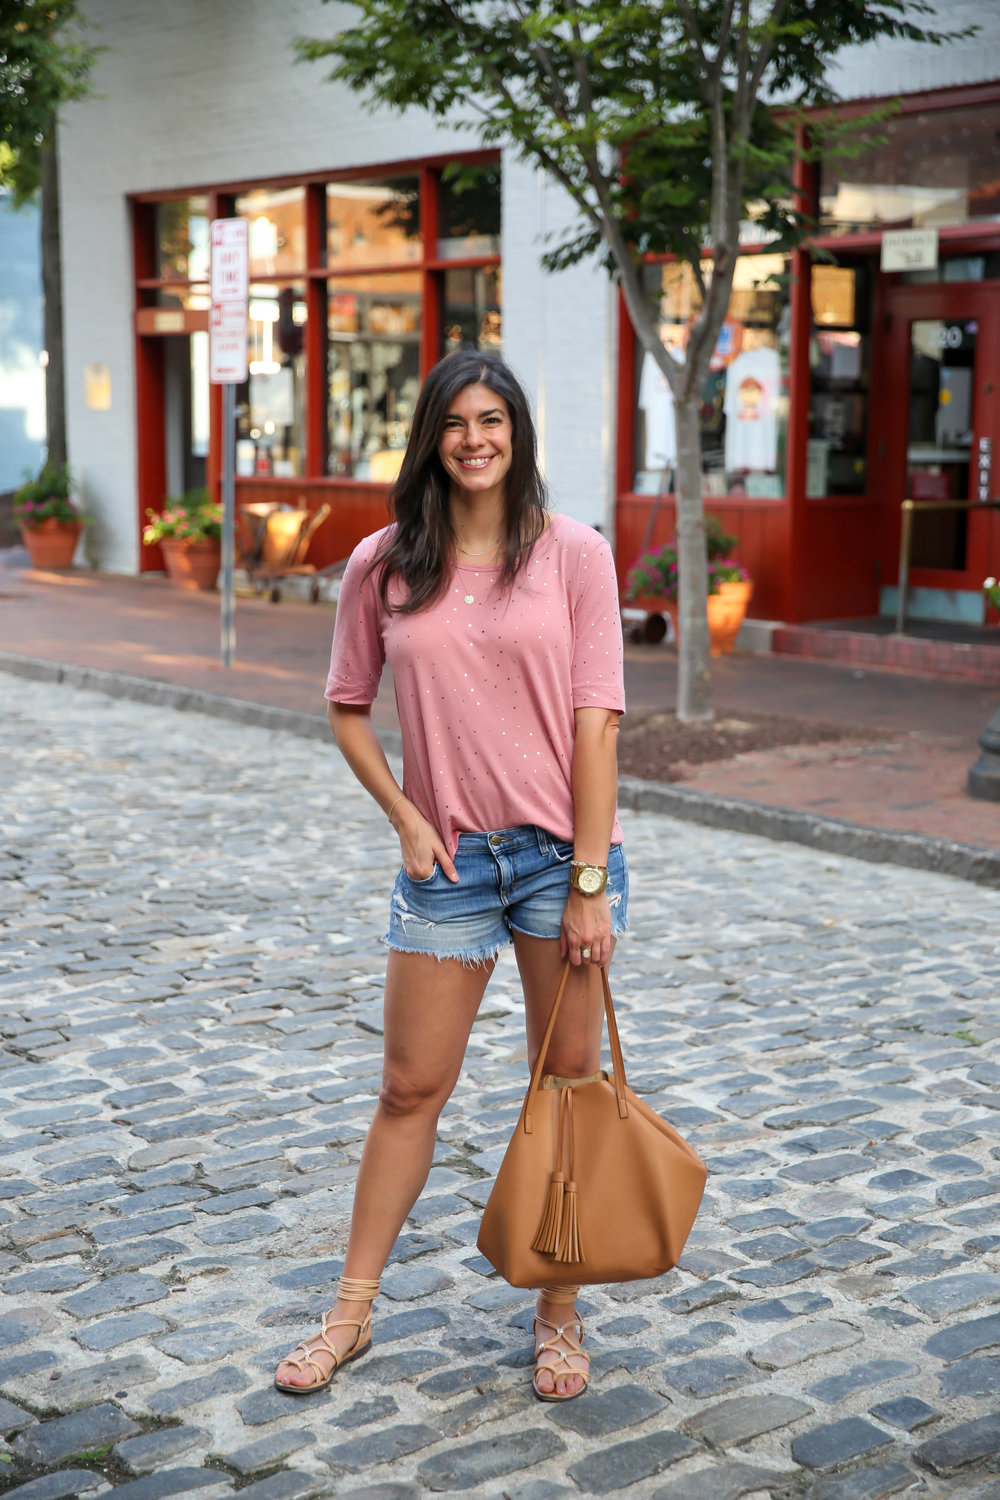 denim-cutoffs-pink-tee-shirt-summer-ootd-lauren-schwaiger-blog.jpg